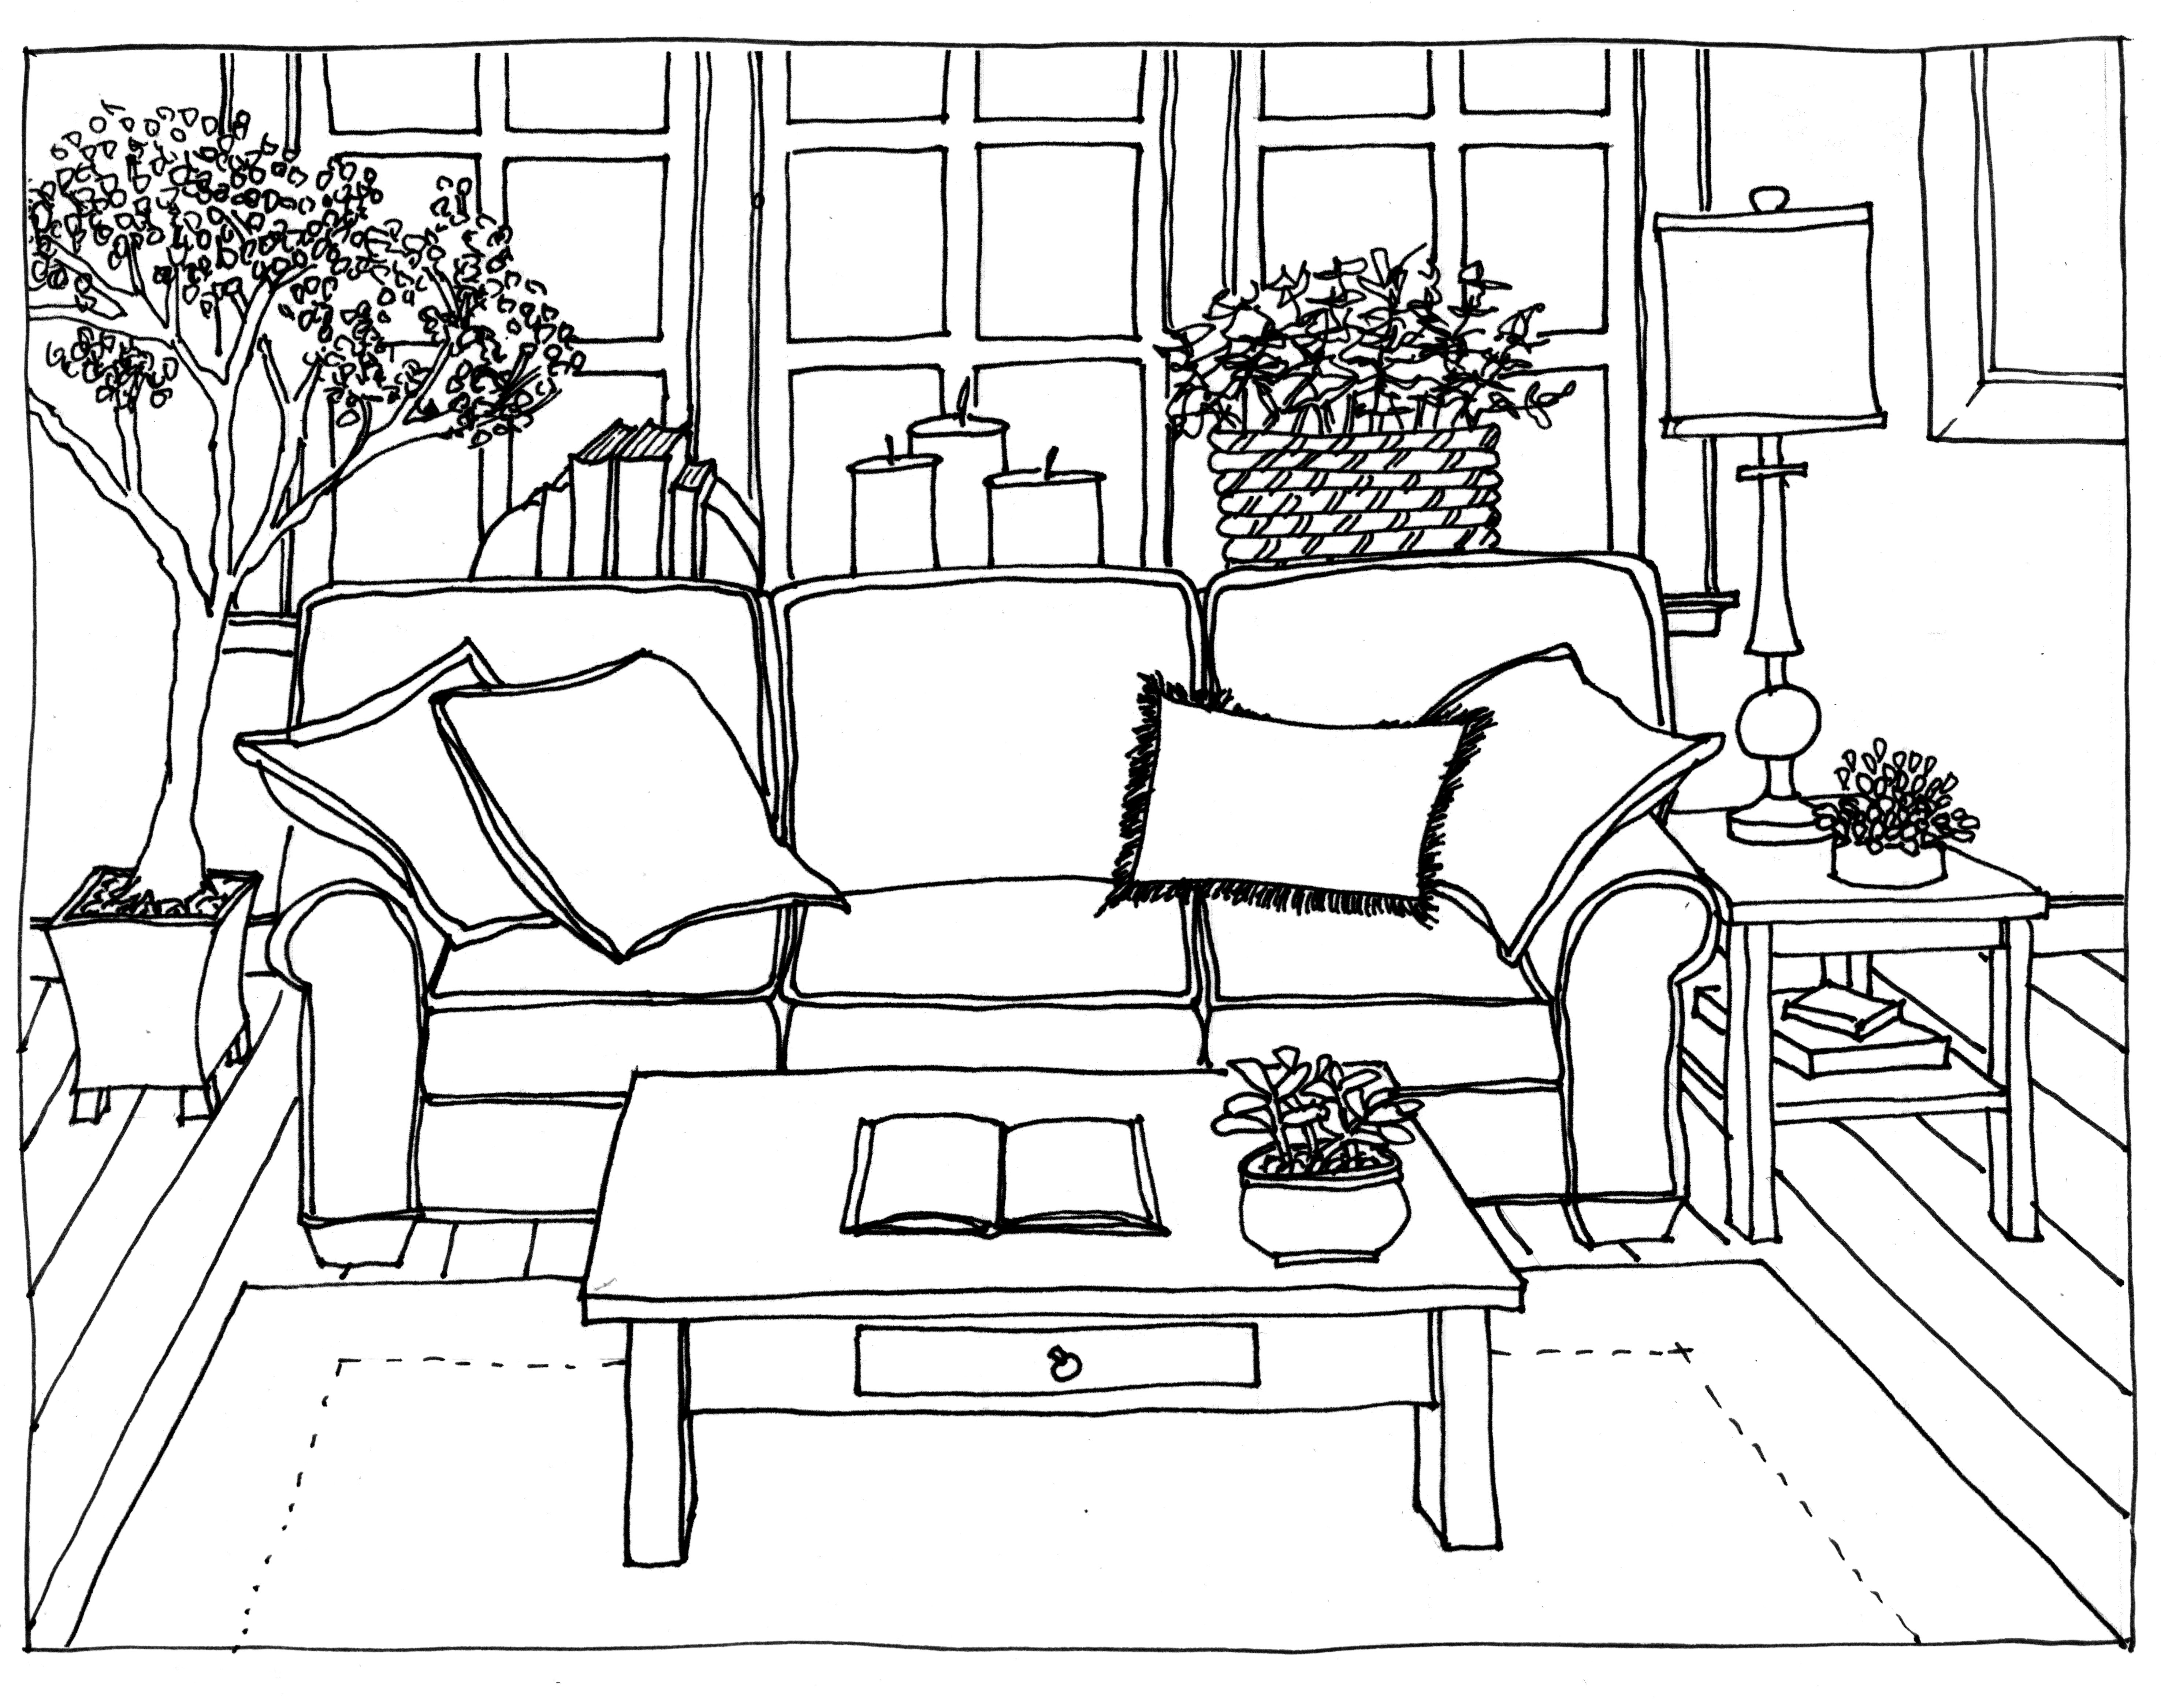 Drawn sofa architectural drawing Sofa Rendering 2 Rendering Stairs